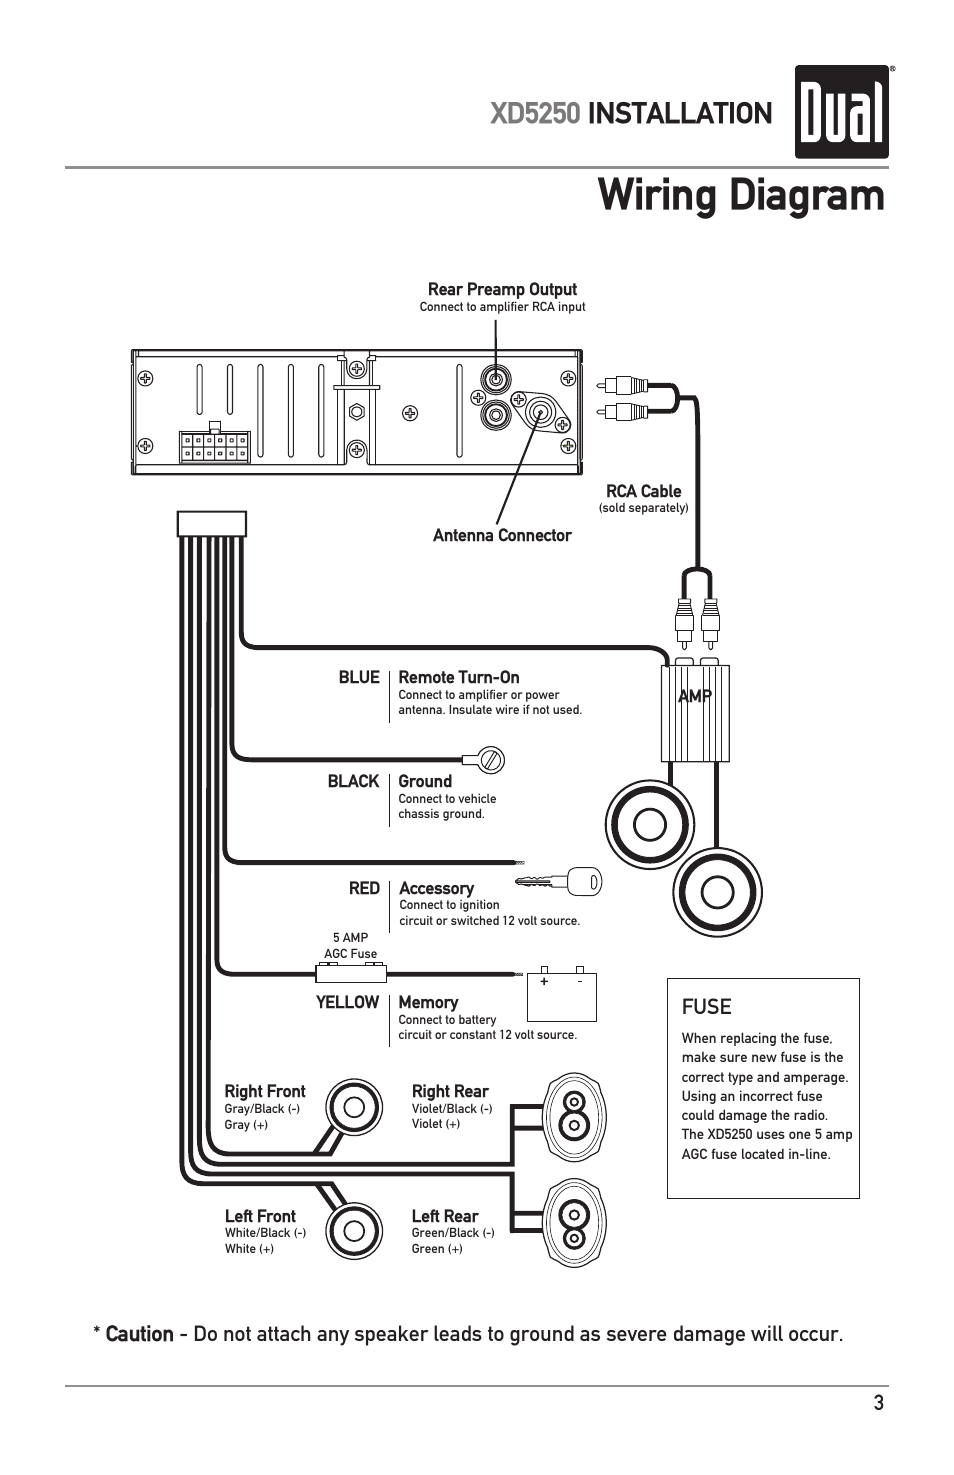 Jeep Kj Fuse Wiring Diagram Manual Guide